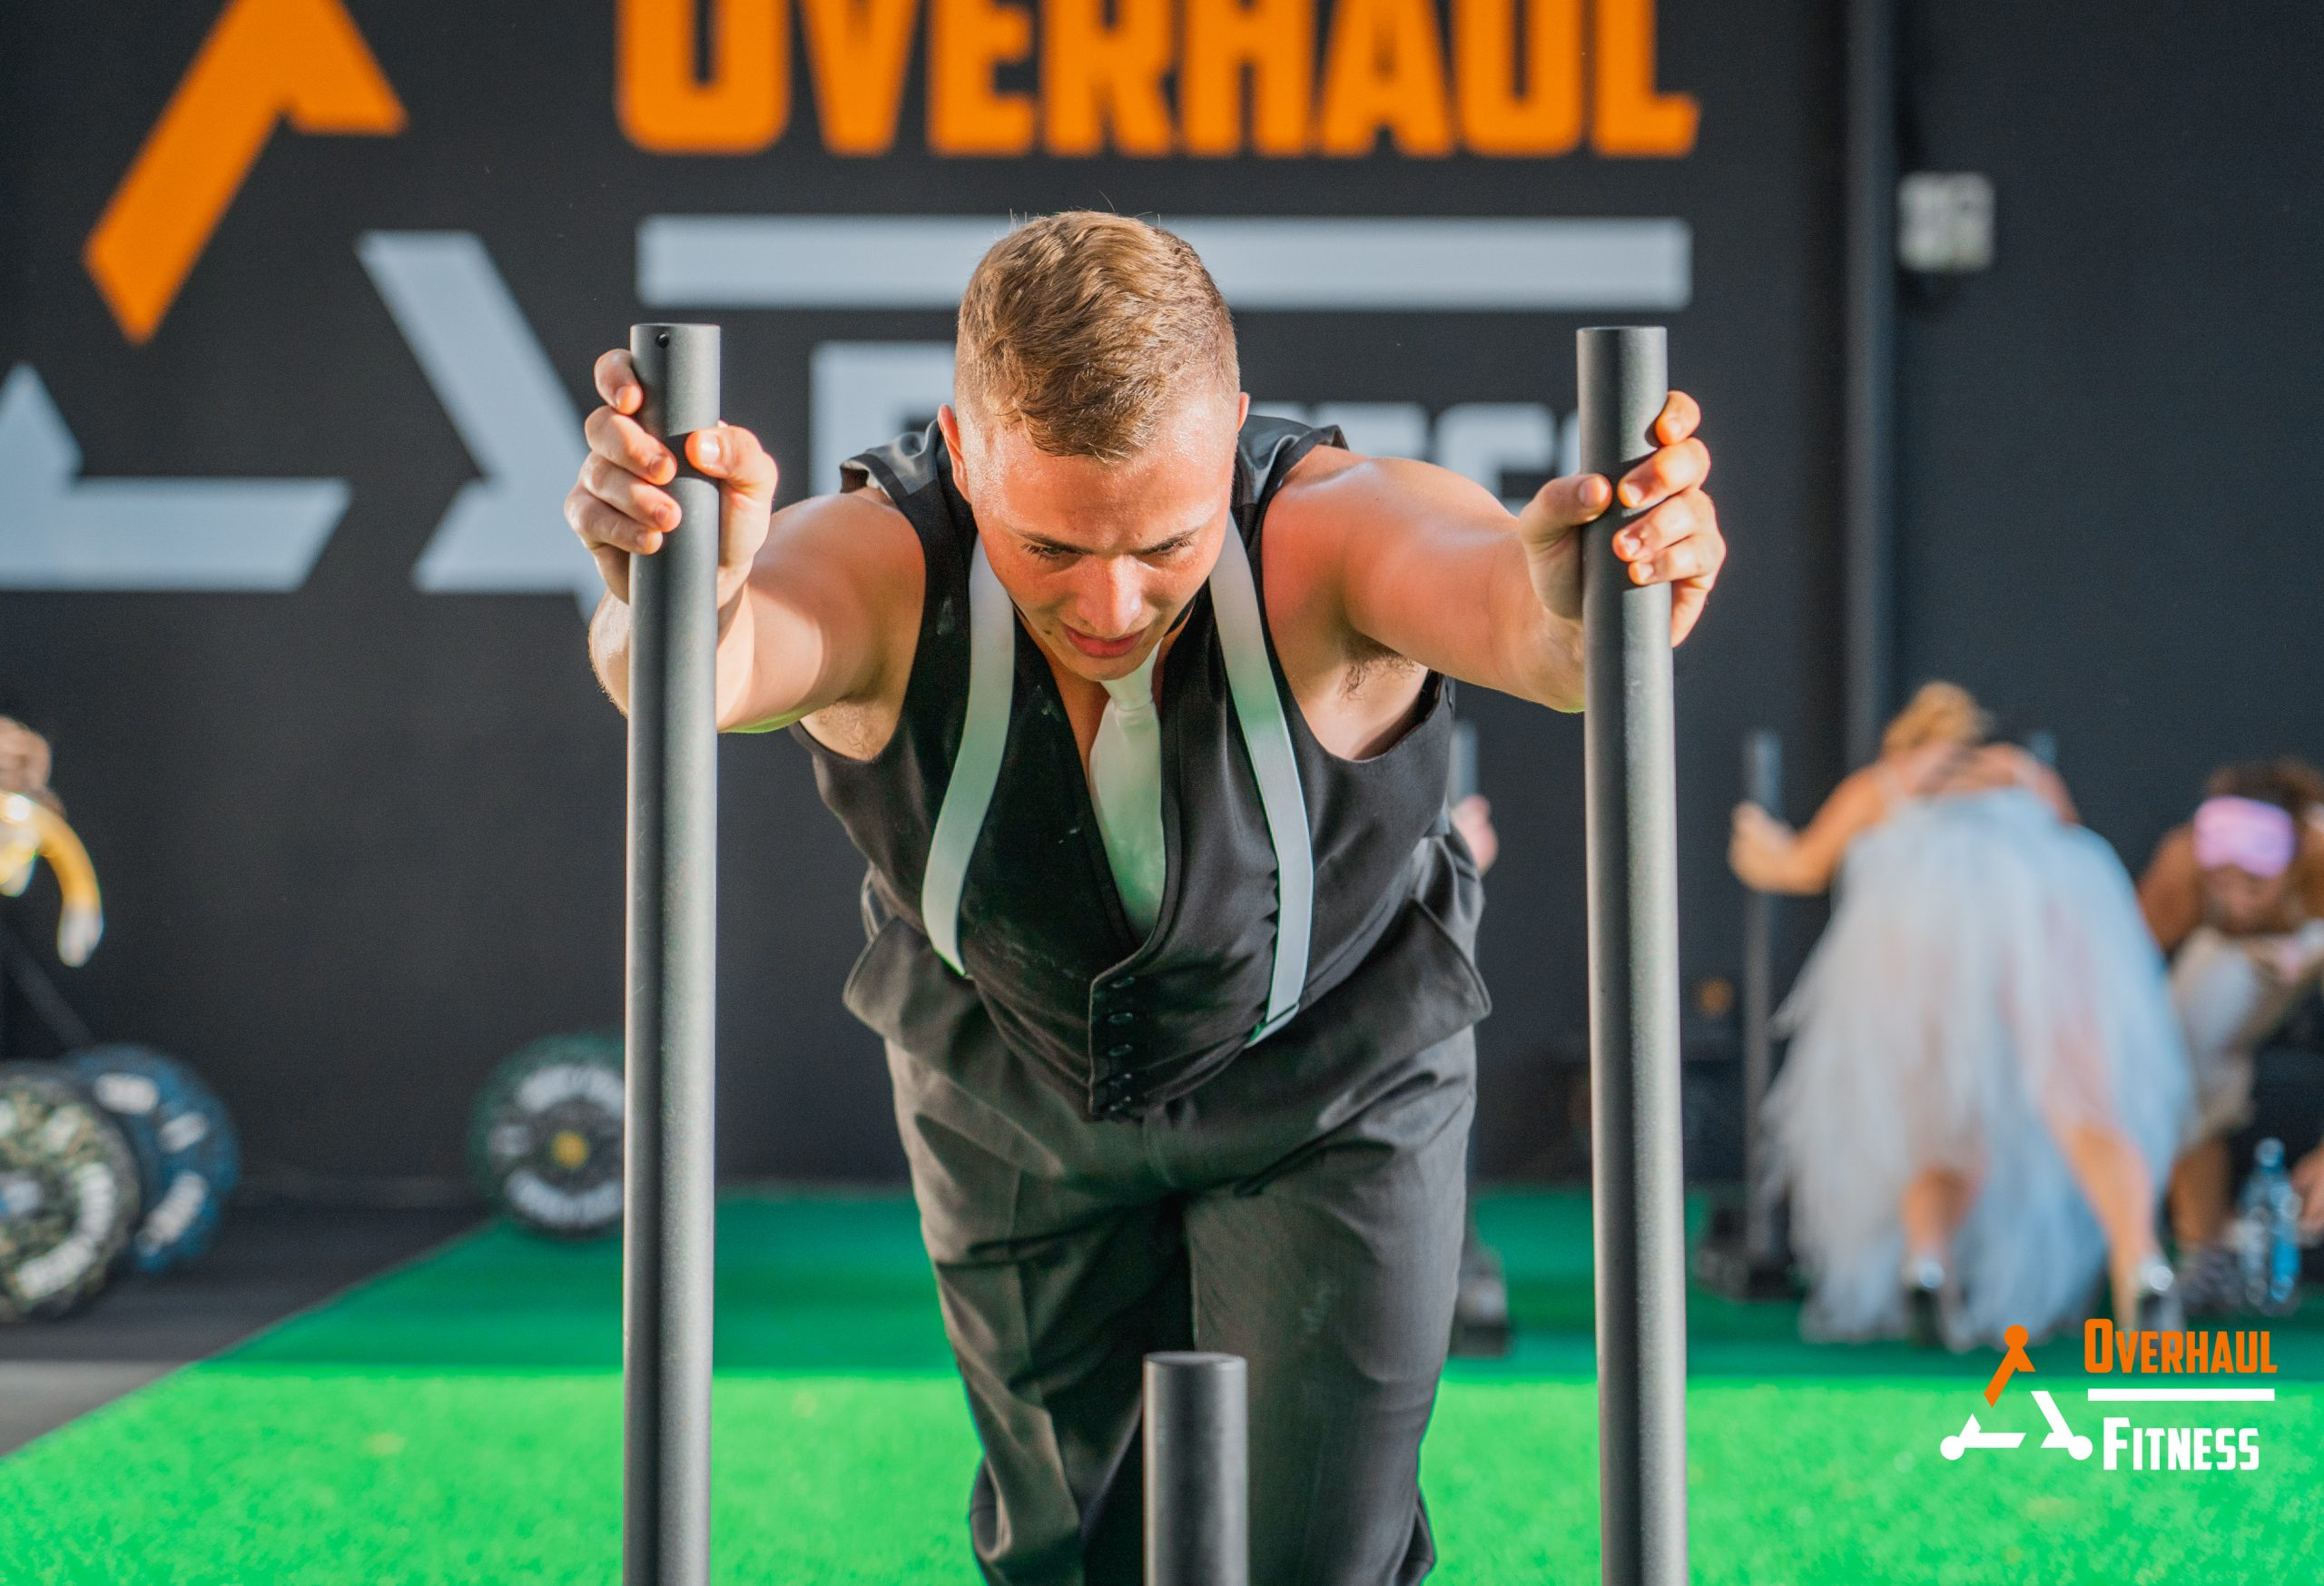 Strong guy doing sled pushes